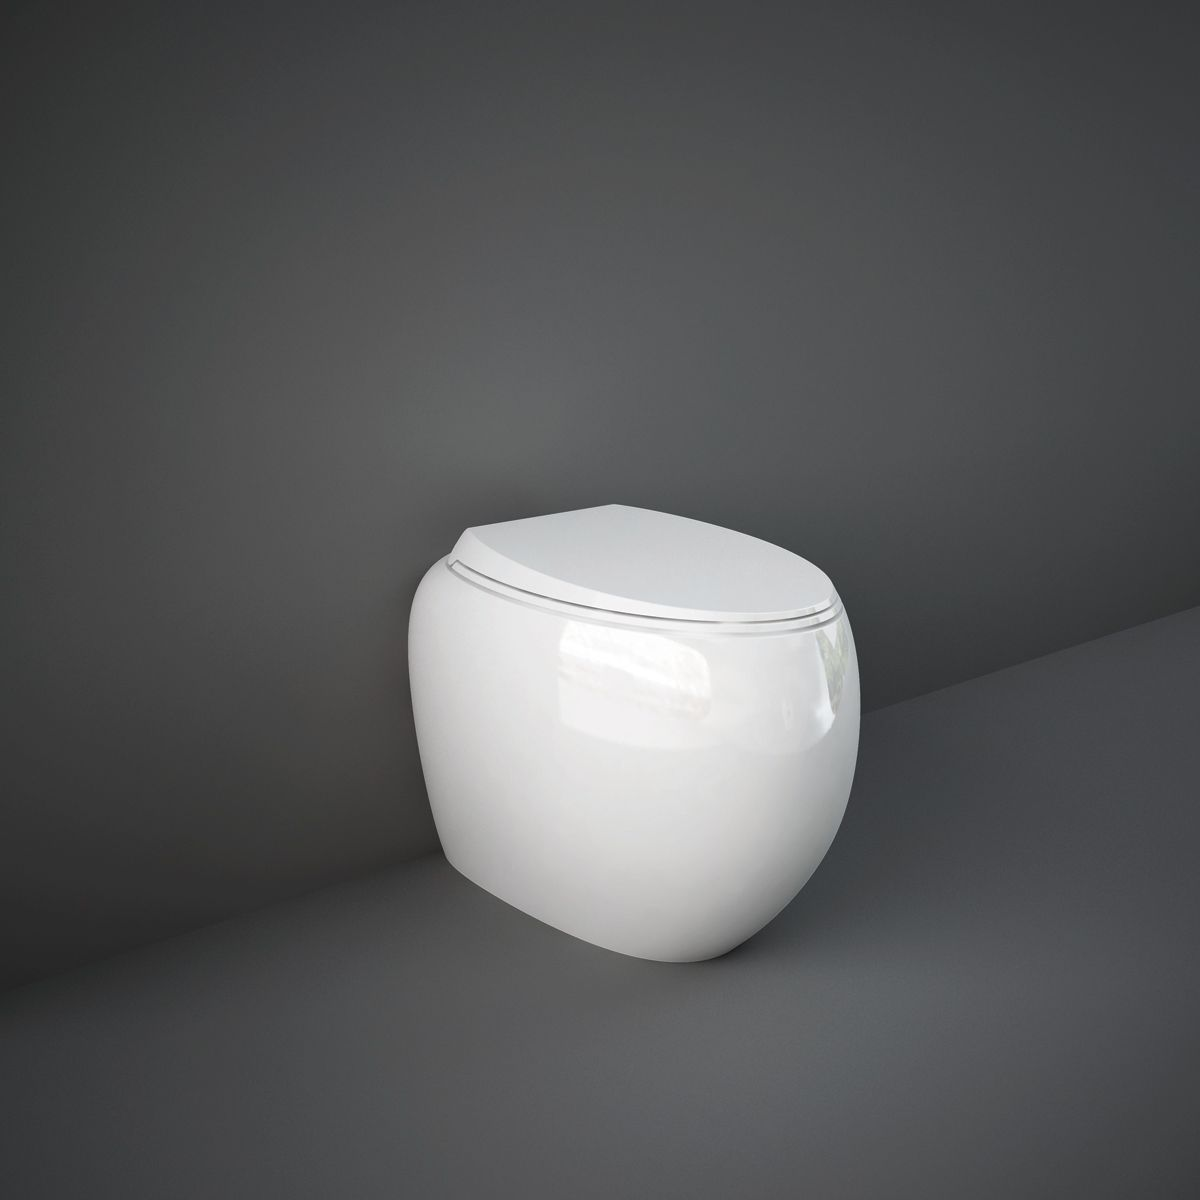 RAK Cloud Gloss Alpine White Back To Wall Toilet with Soft Close Seat